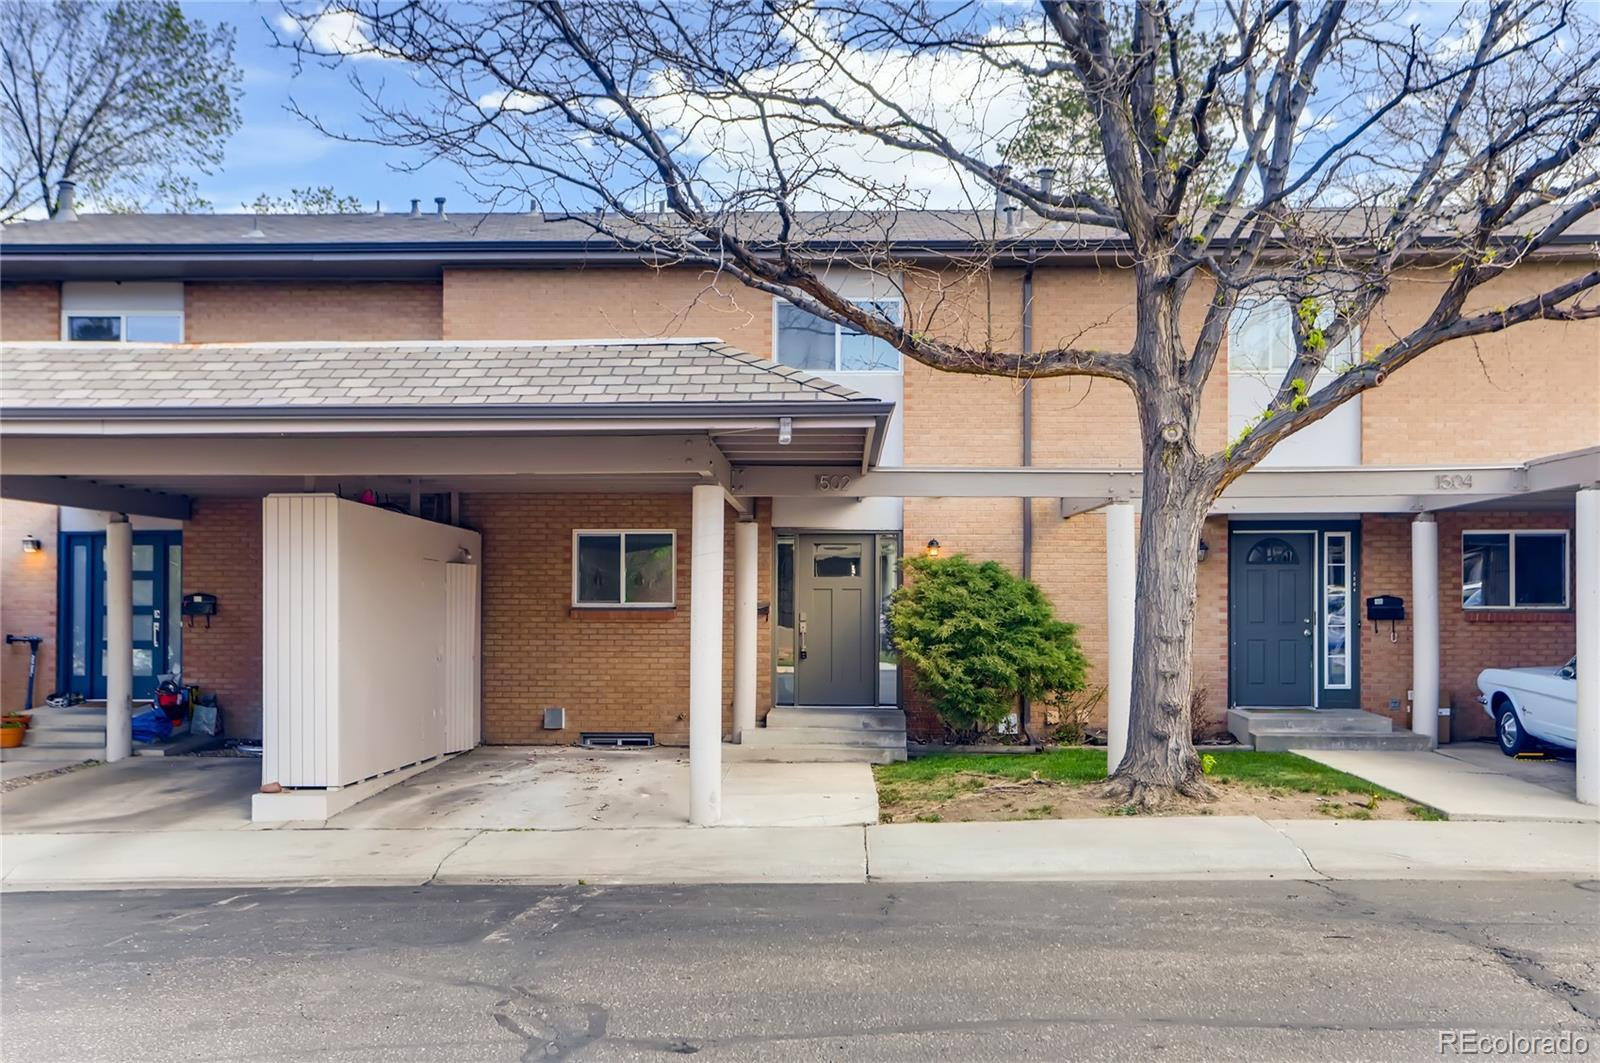 1502 Chambers, Boulder, CO 80305 - #: 2346552